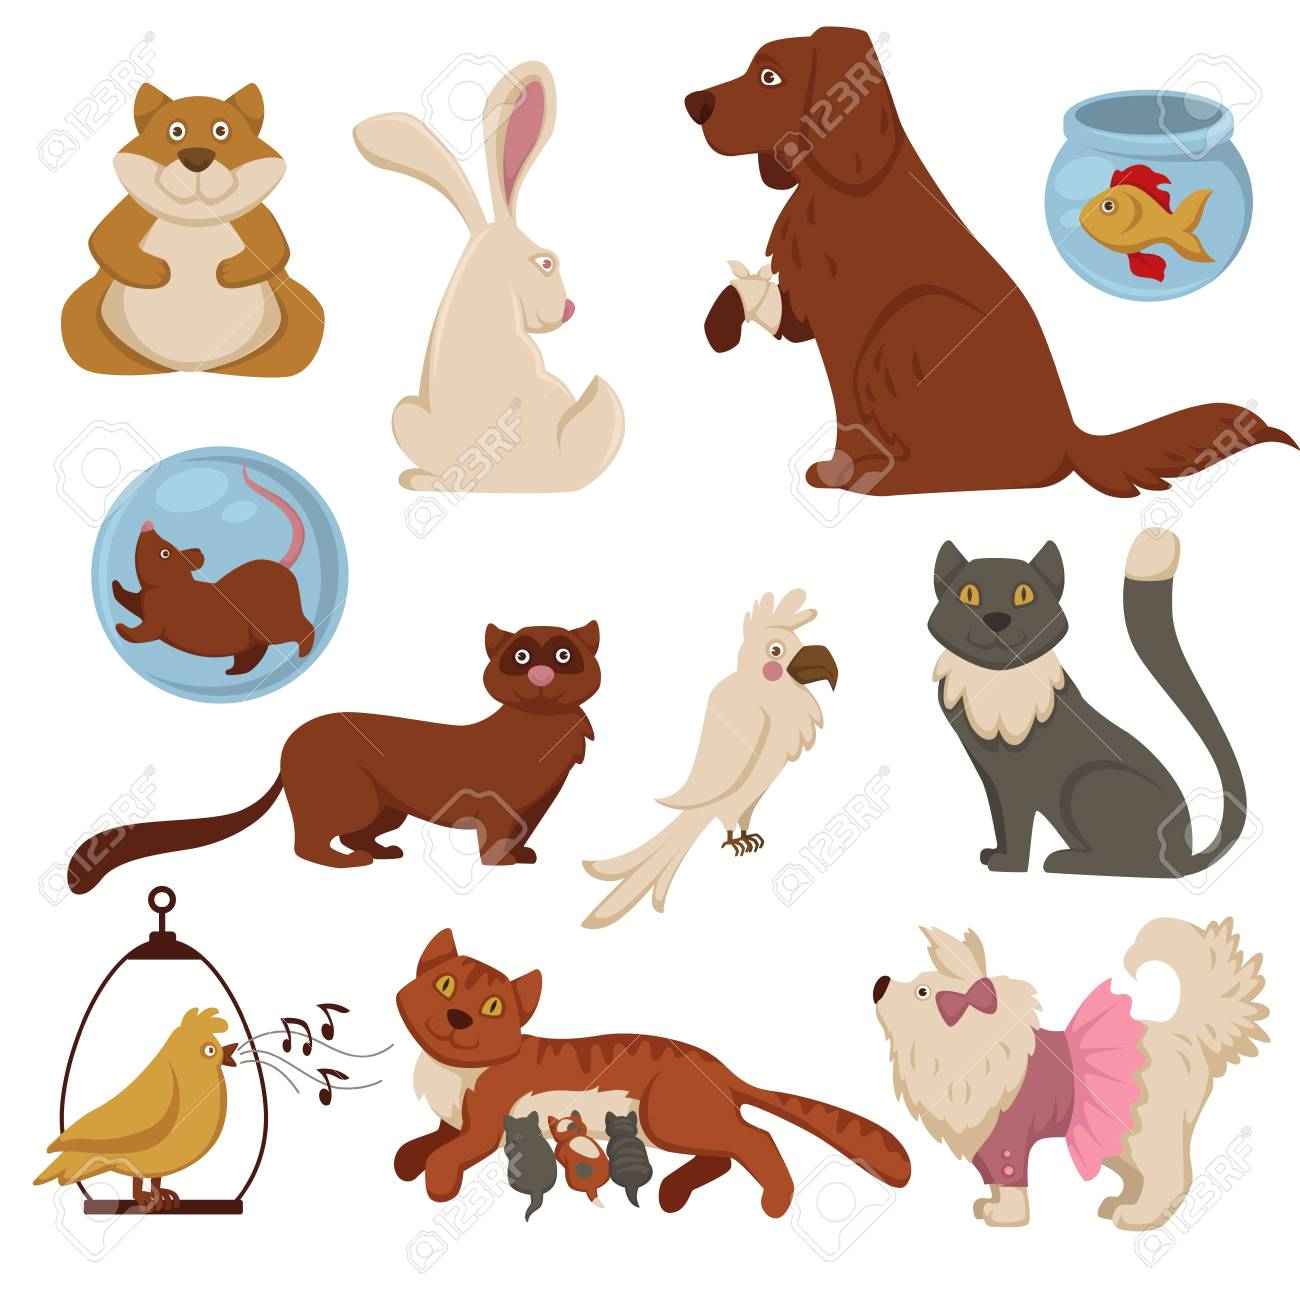 Pets cartoon characters vector flat animal icons of cat and dog..